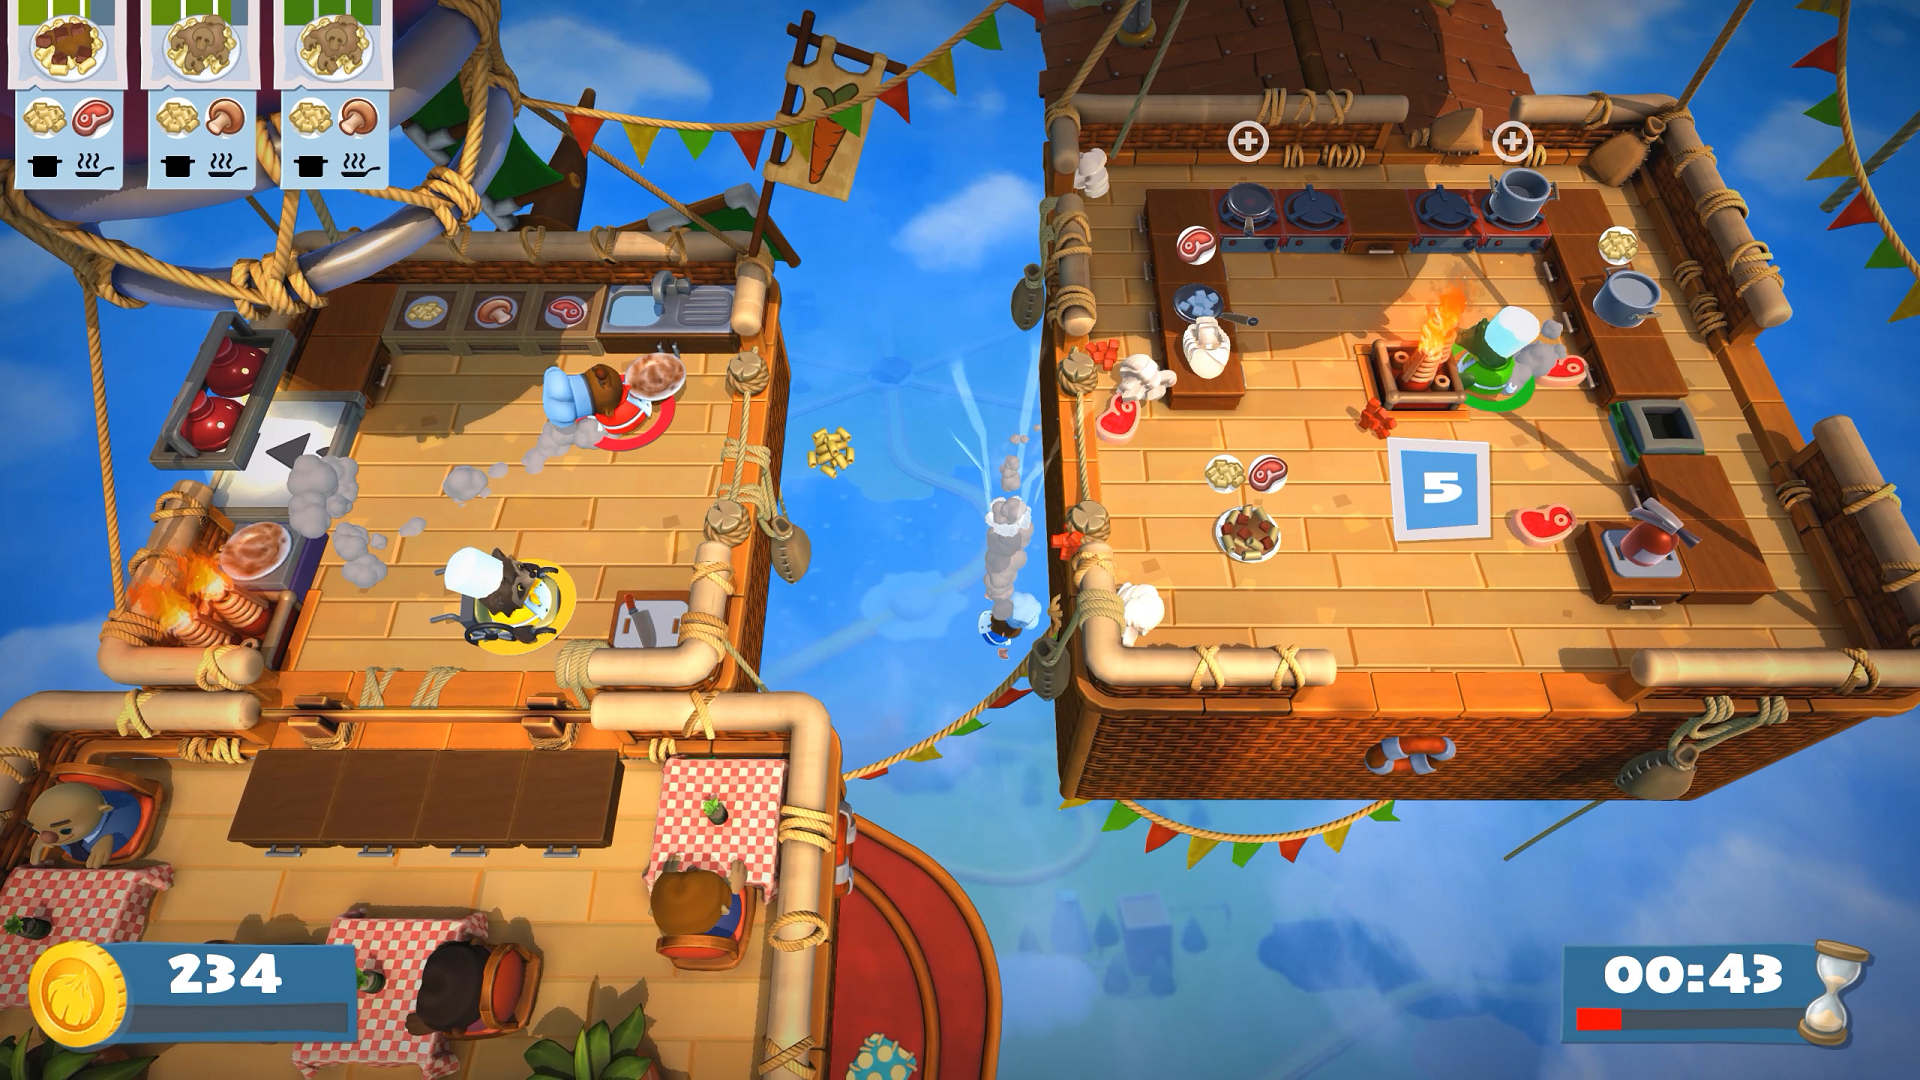 Action, arcade, casual, Family, Ghost Town Games, indie, Overcooked 2, Overcooked 2 Review, party, PS4, PS4 Review, Rating 8/10, Team17 Digital